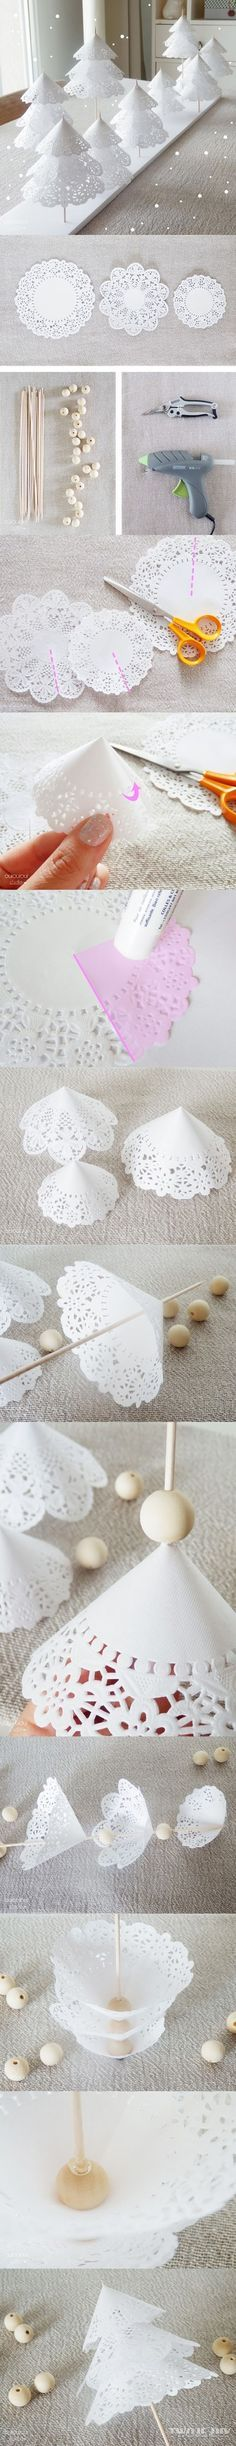 A beautiful craft for a white Christmas! Decorate your home with great homemade crafts with Walgreens.com!